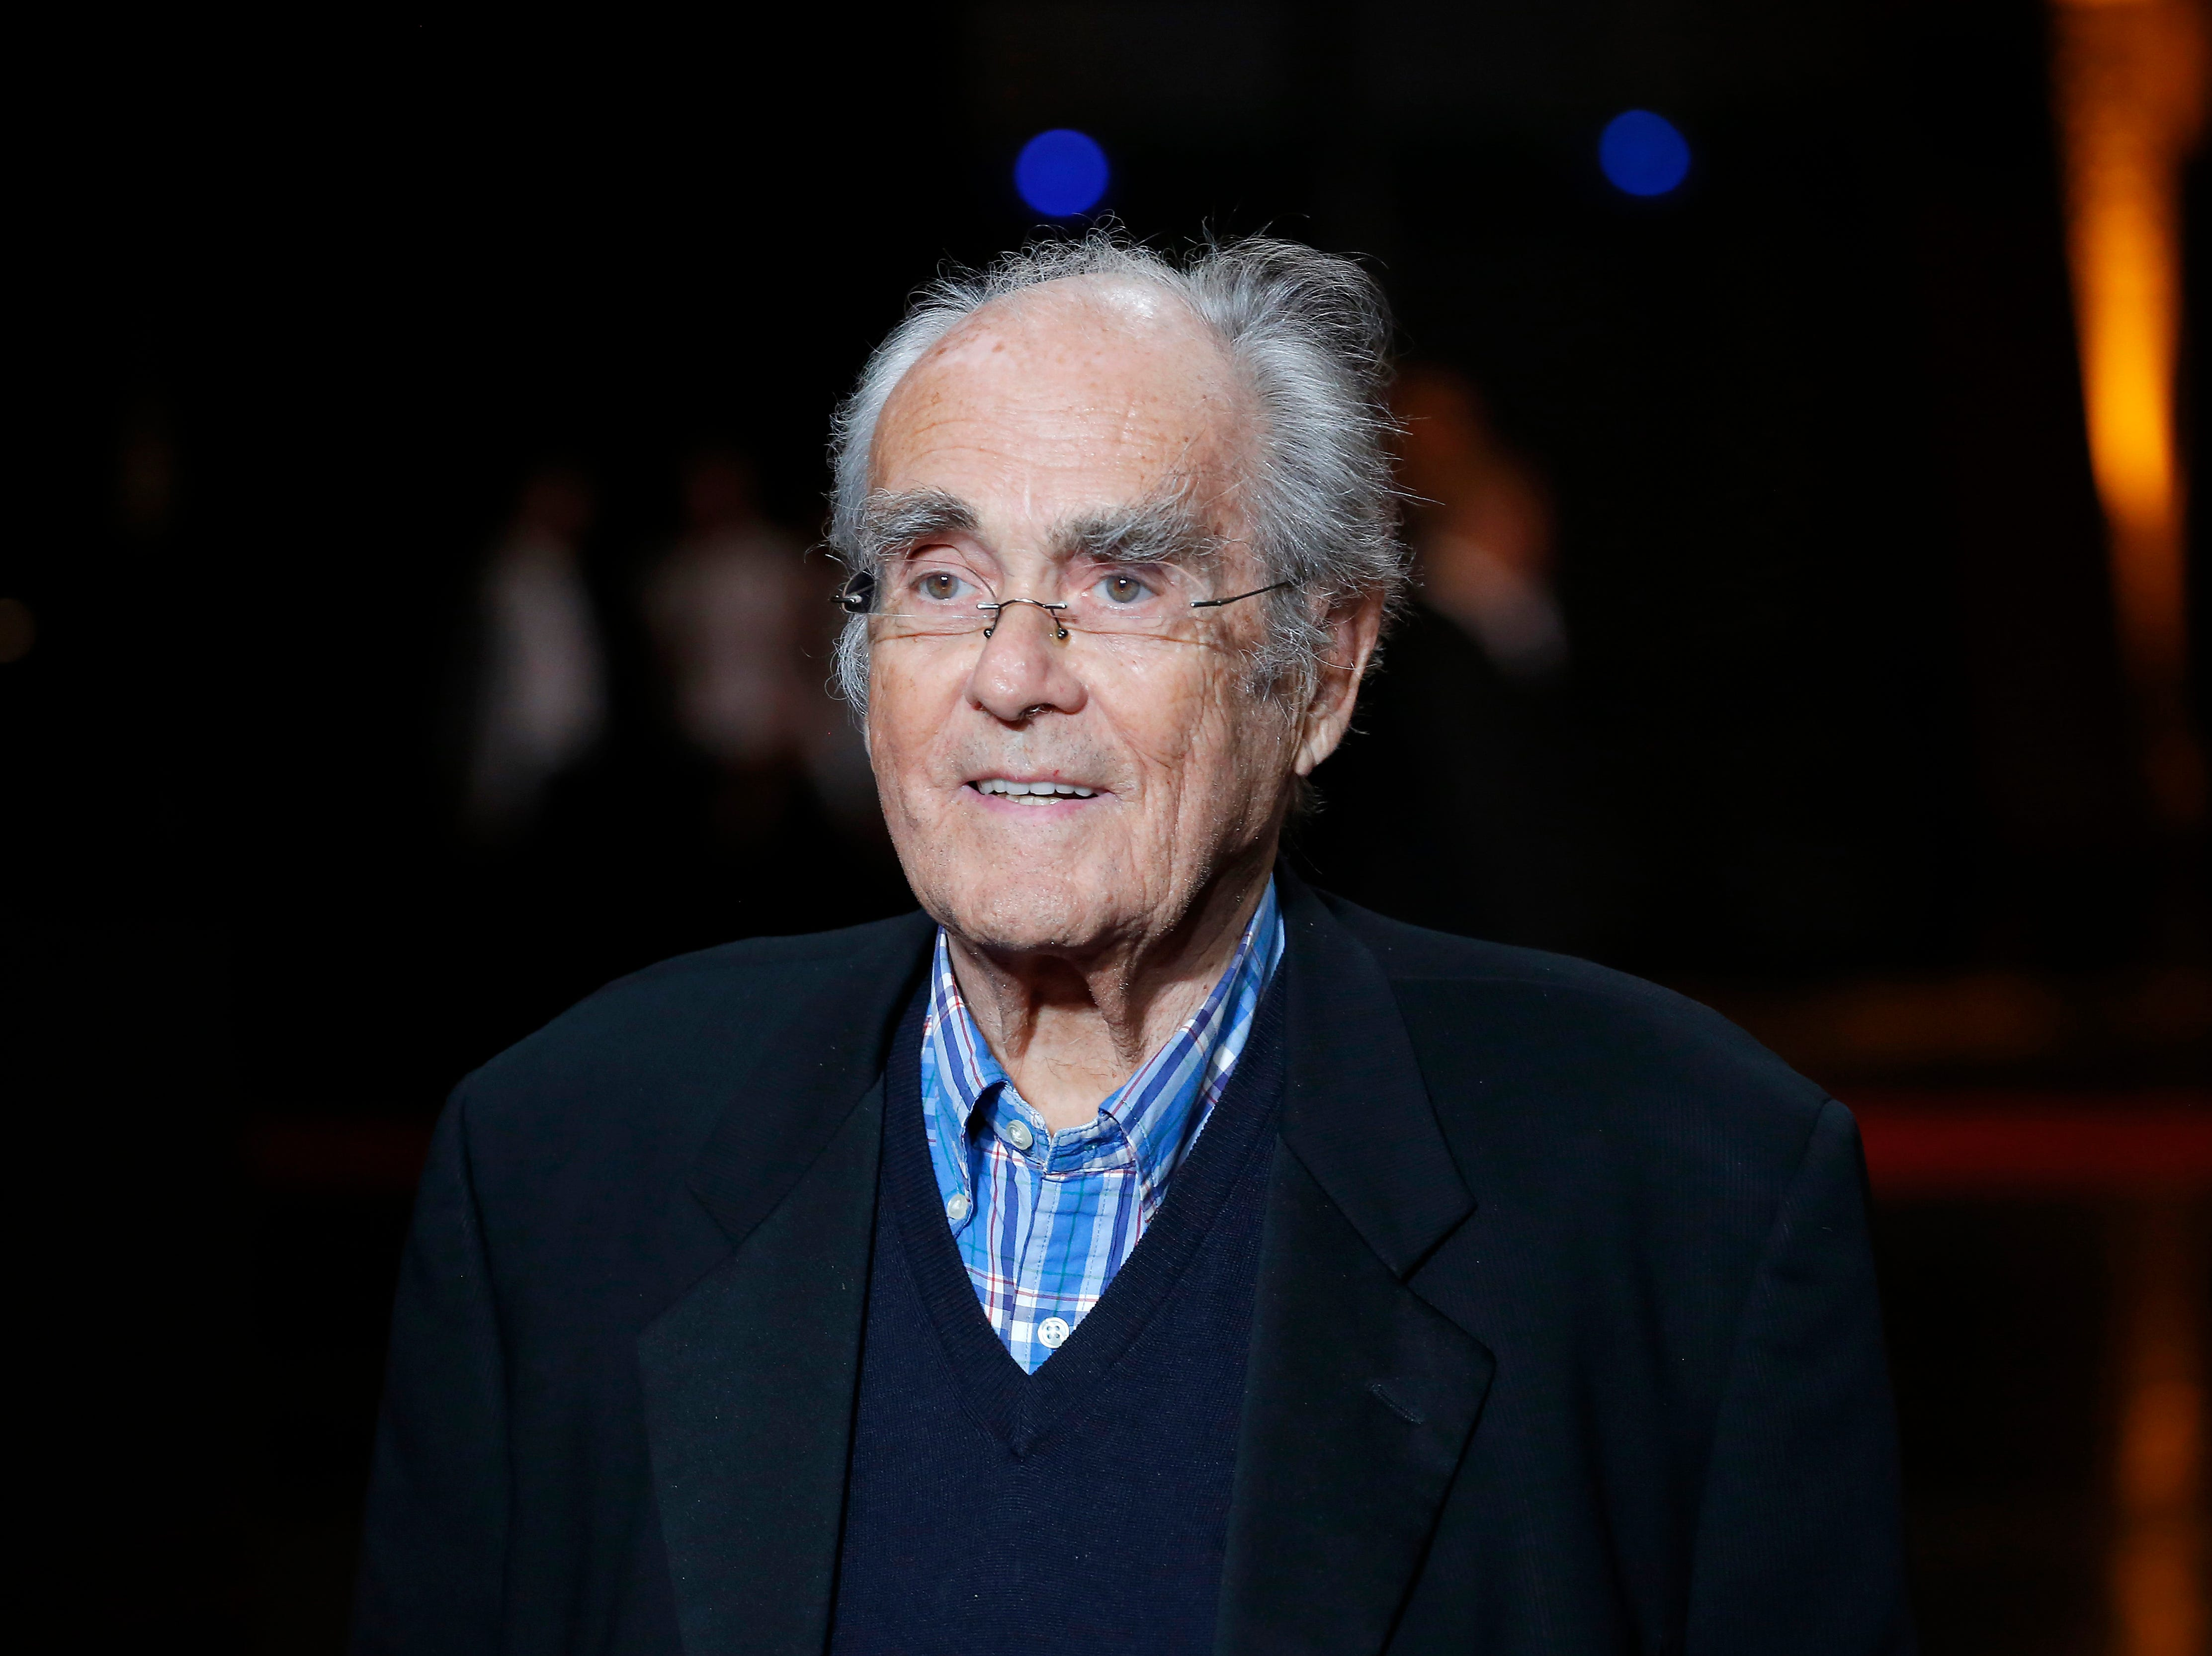 French conductor Michel Legrand arrives at the opening ceremony of the 6th Lumiere Festival, in Lyon, France on Oct. 13, 2014.